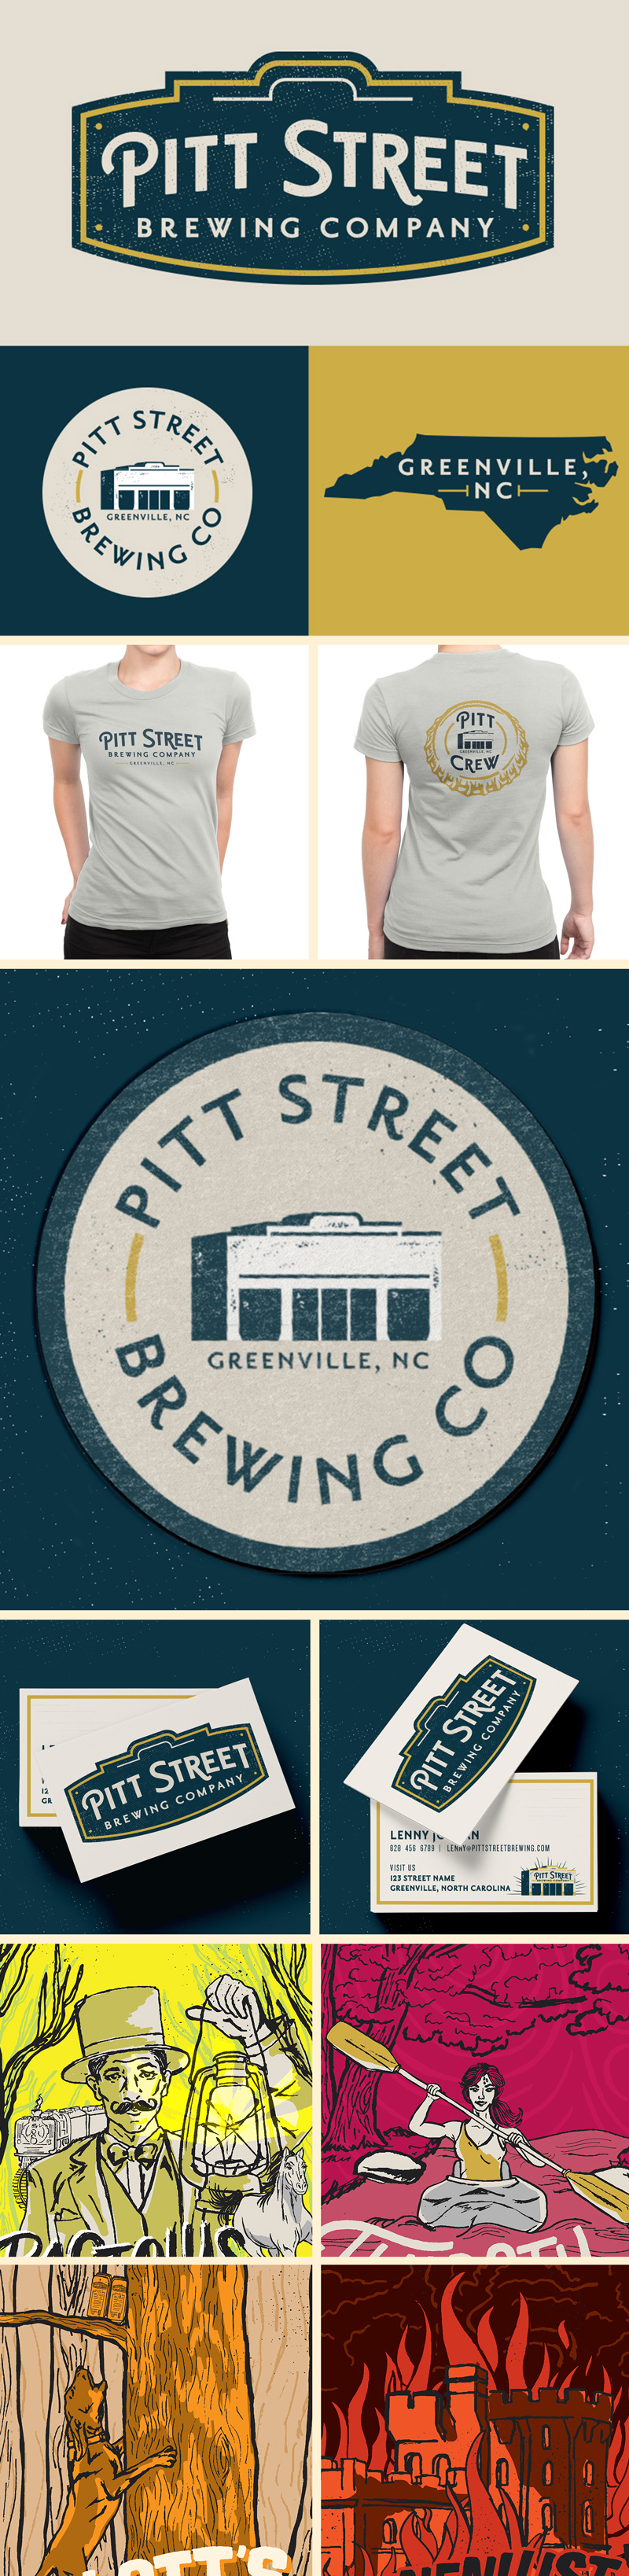 Pitt Street Brewing Company branding and packaging design with custom typography and illustration by Riddle Design Co. in Richmond, Virginia